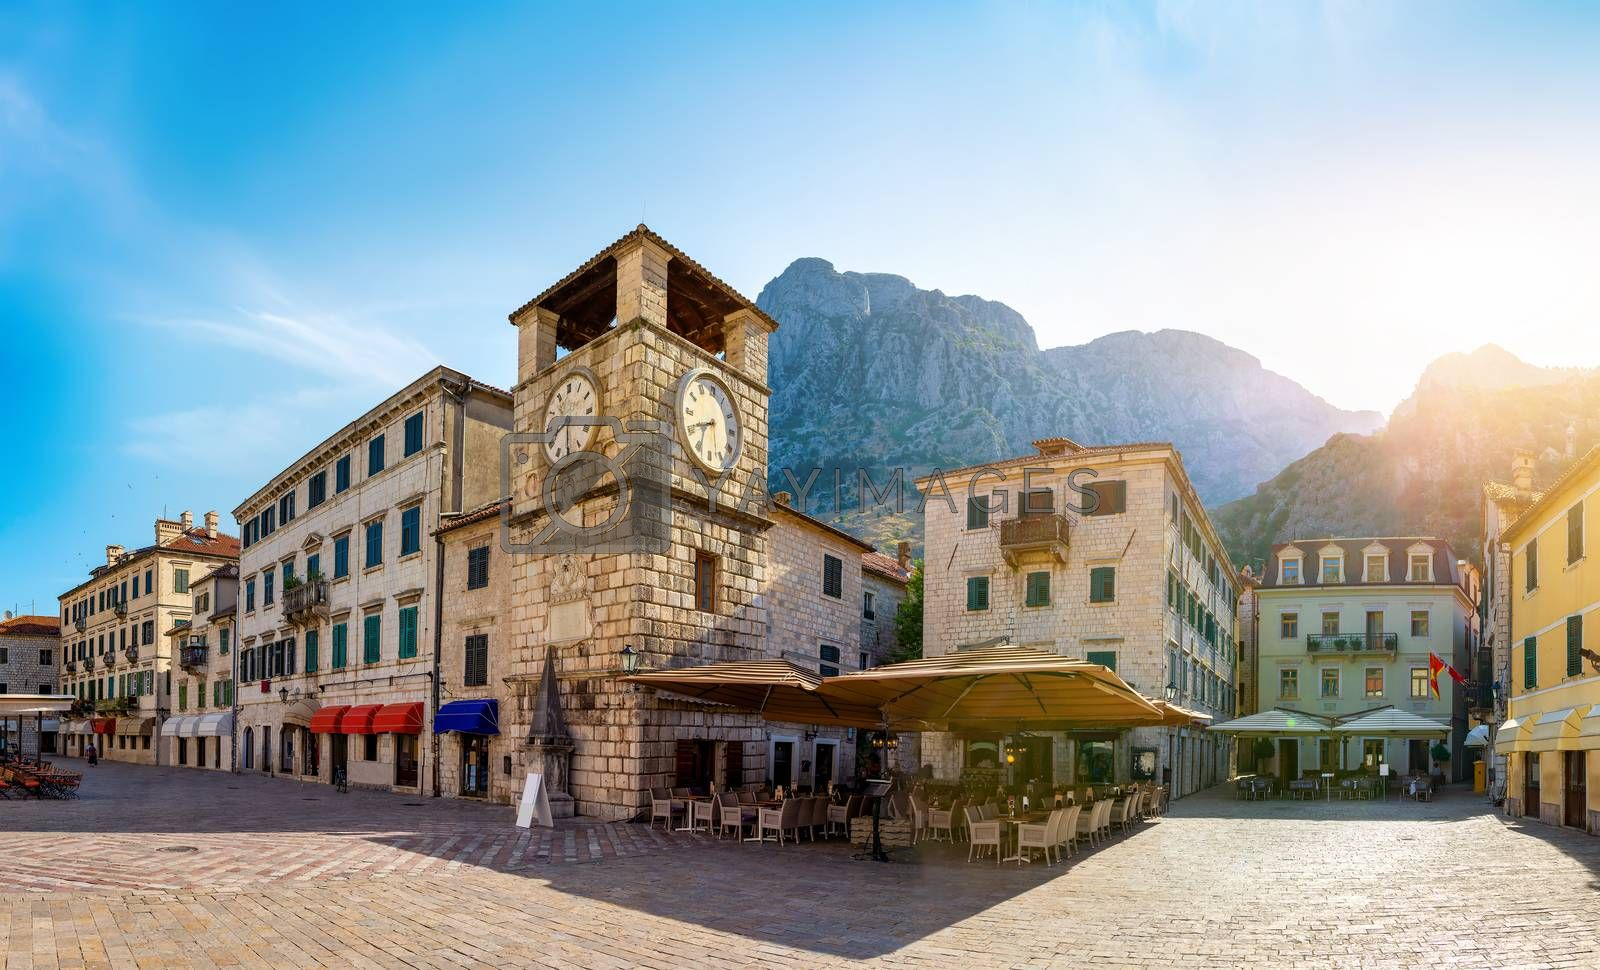 Clock Tower inside the old town of Kotor in Montenegro